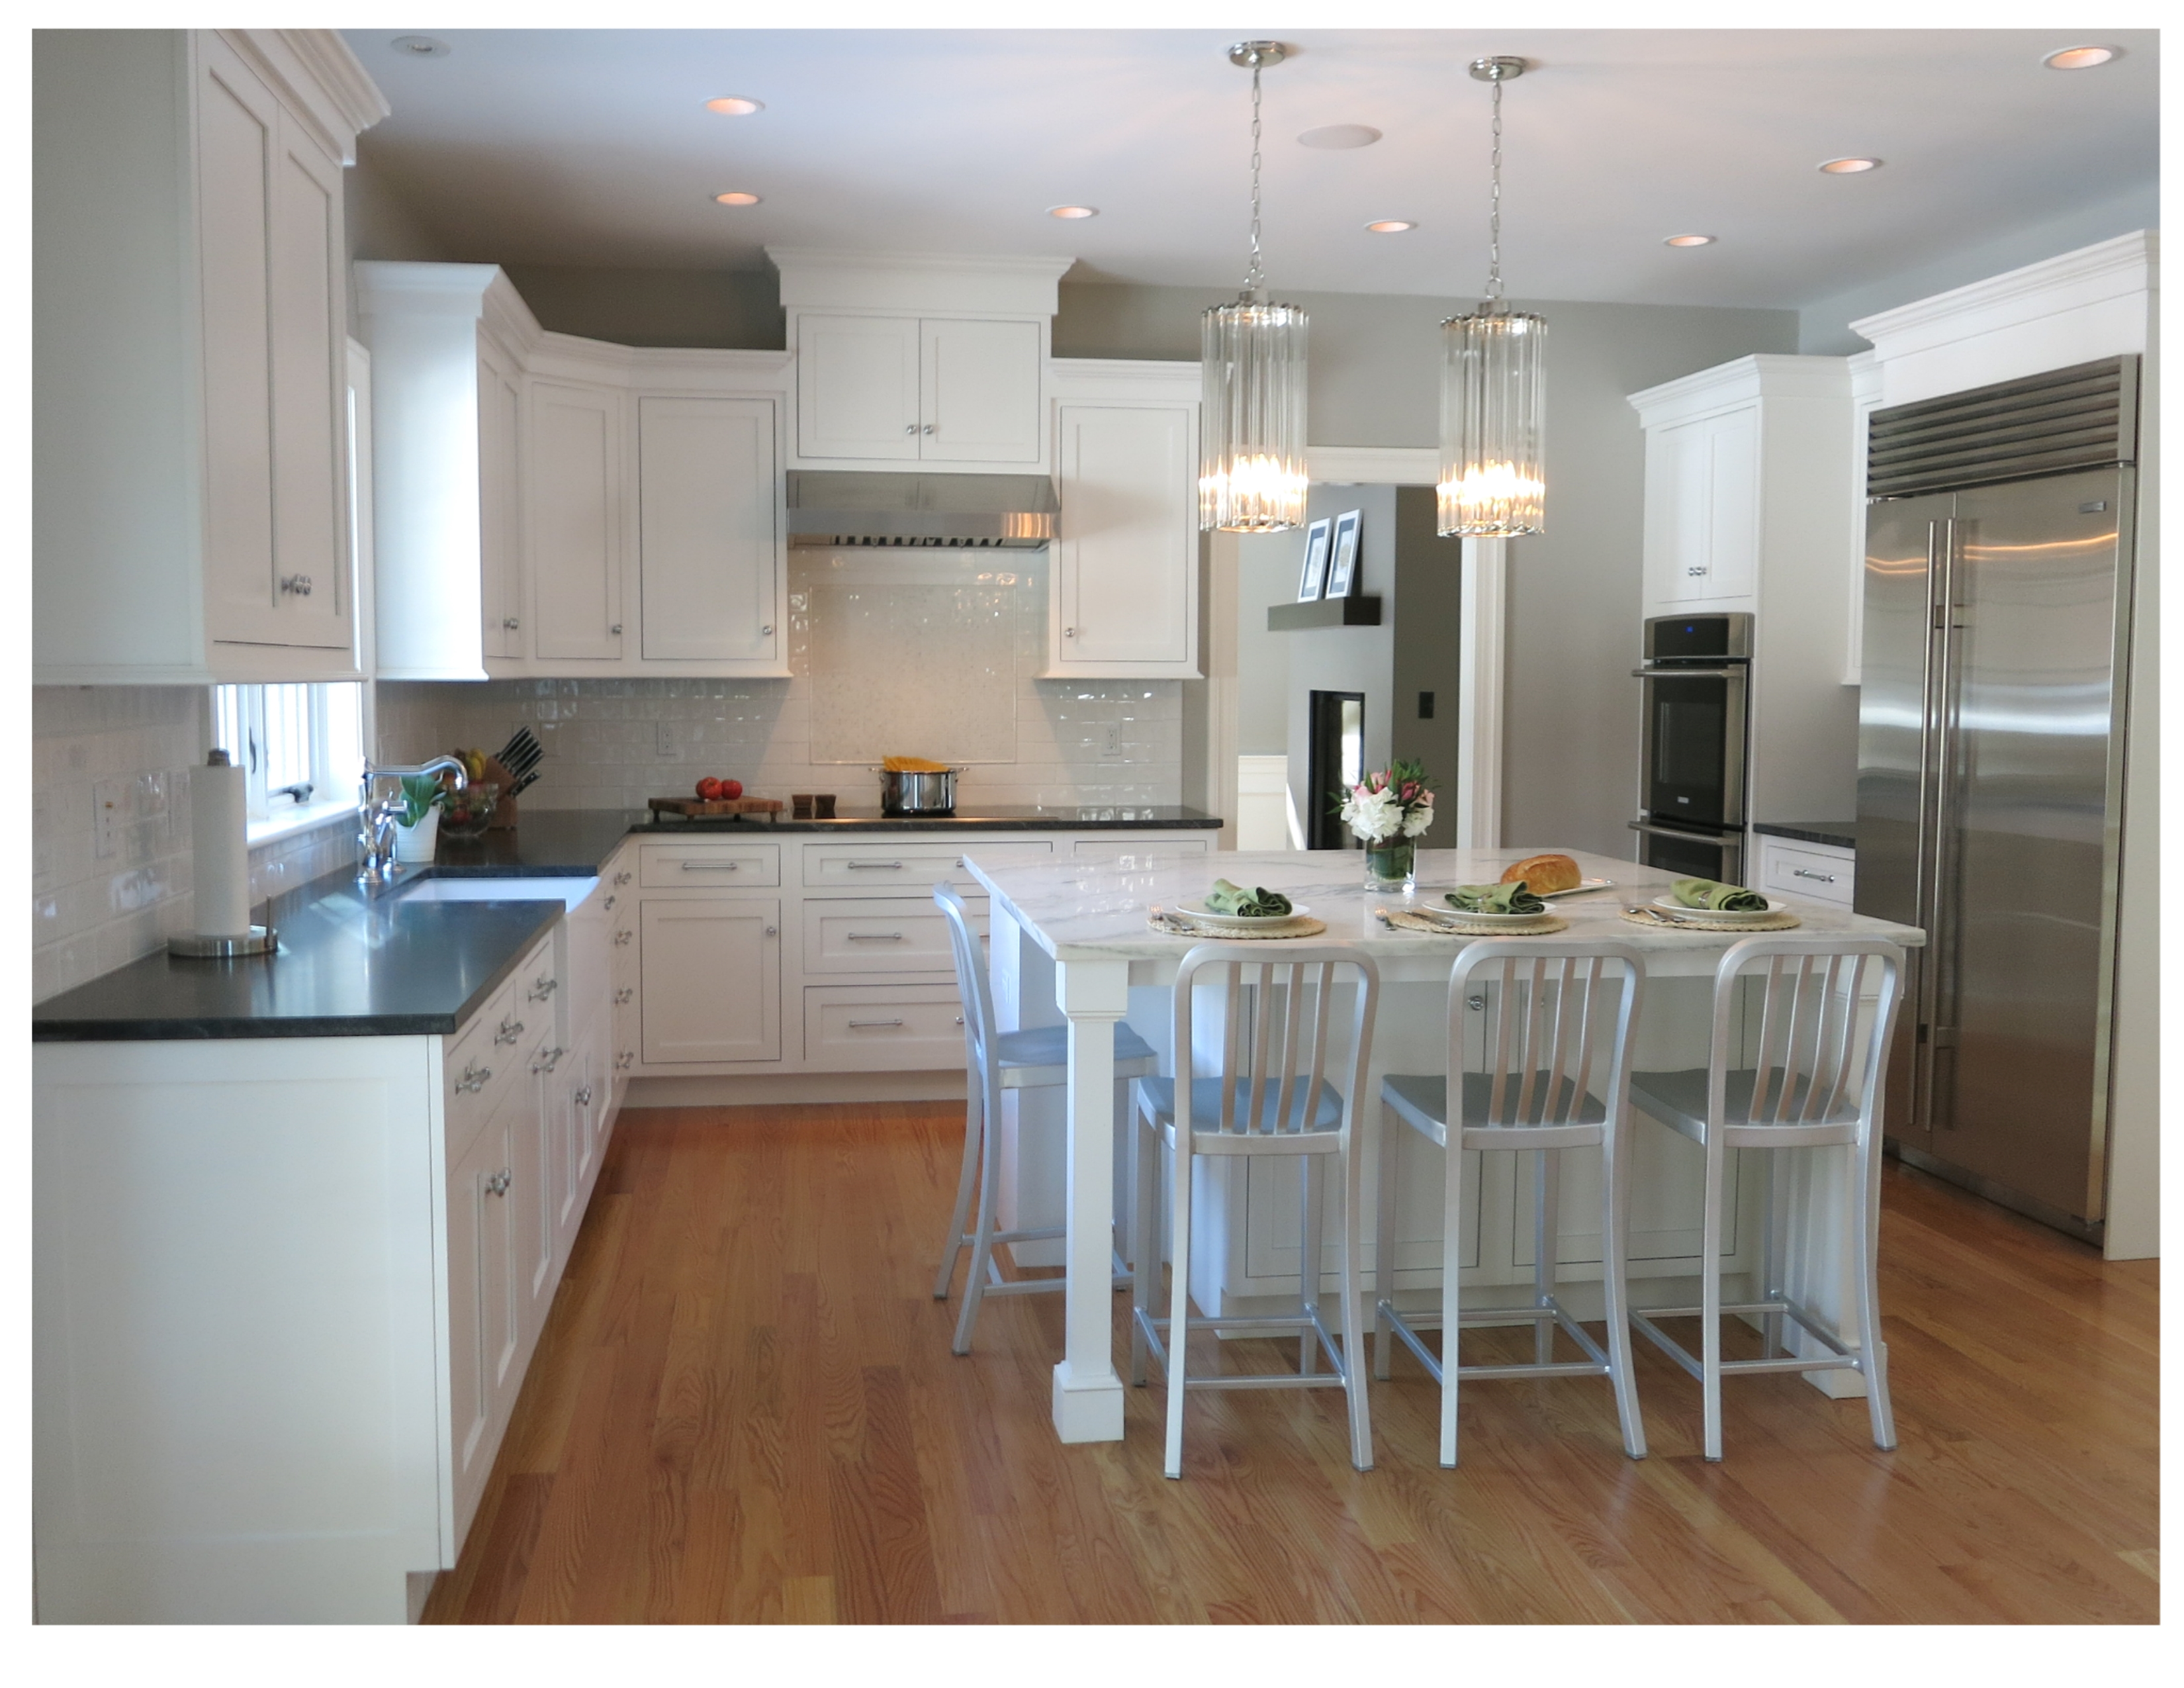 Great Northern White painted inset cabinets with Jet Mist countertops